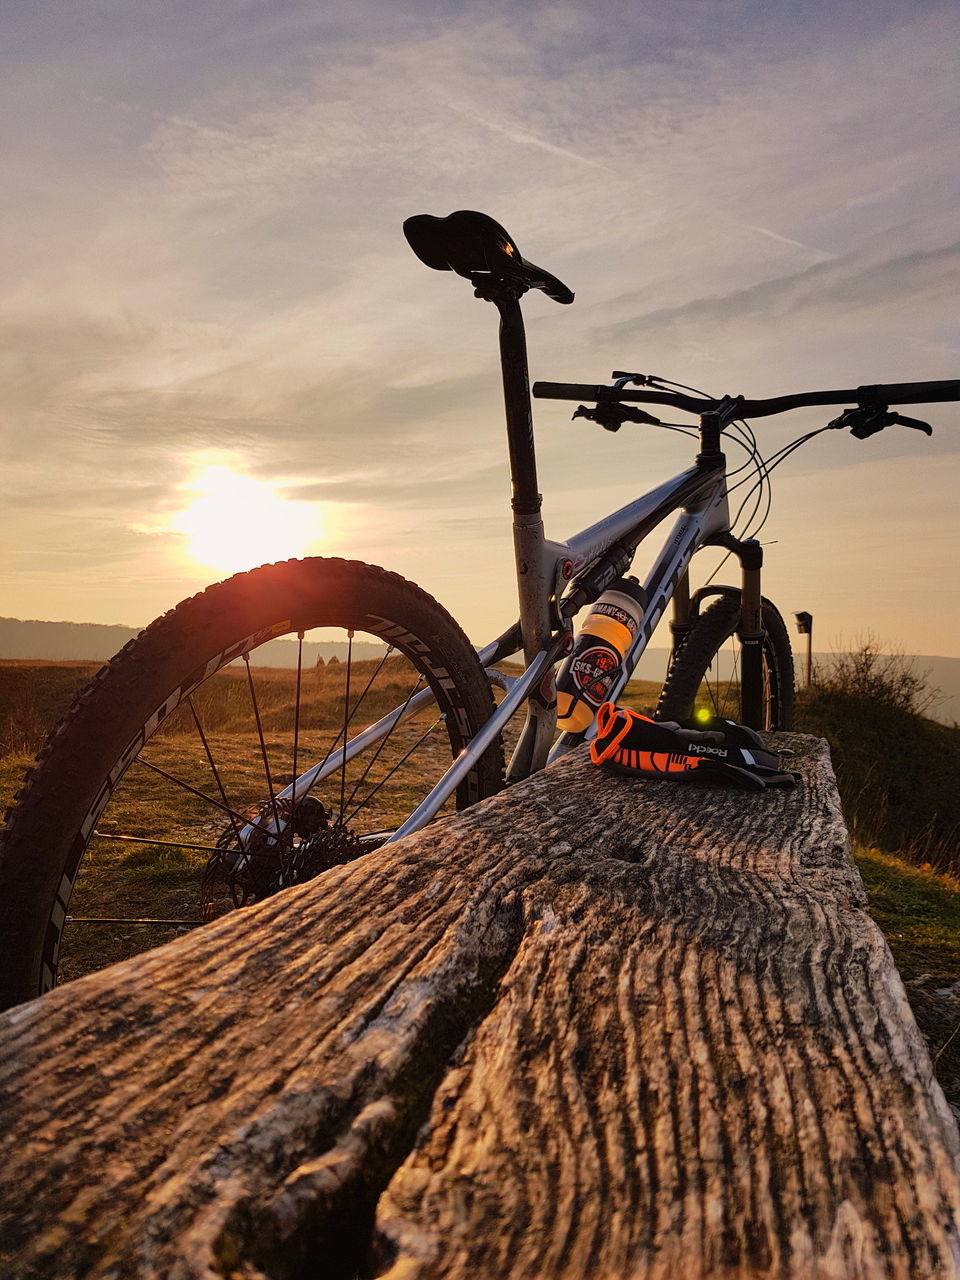 bicycle, transportation, mode of transport, sunset, land vehicle, sky, outdoors, no people, nature, mountain bike, day